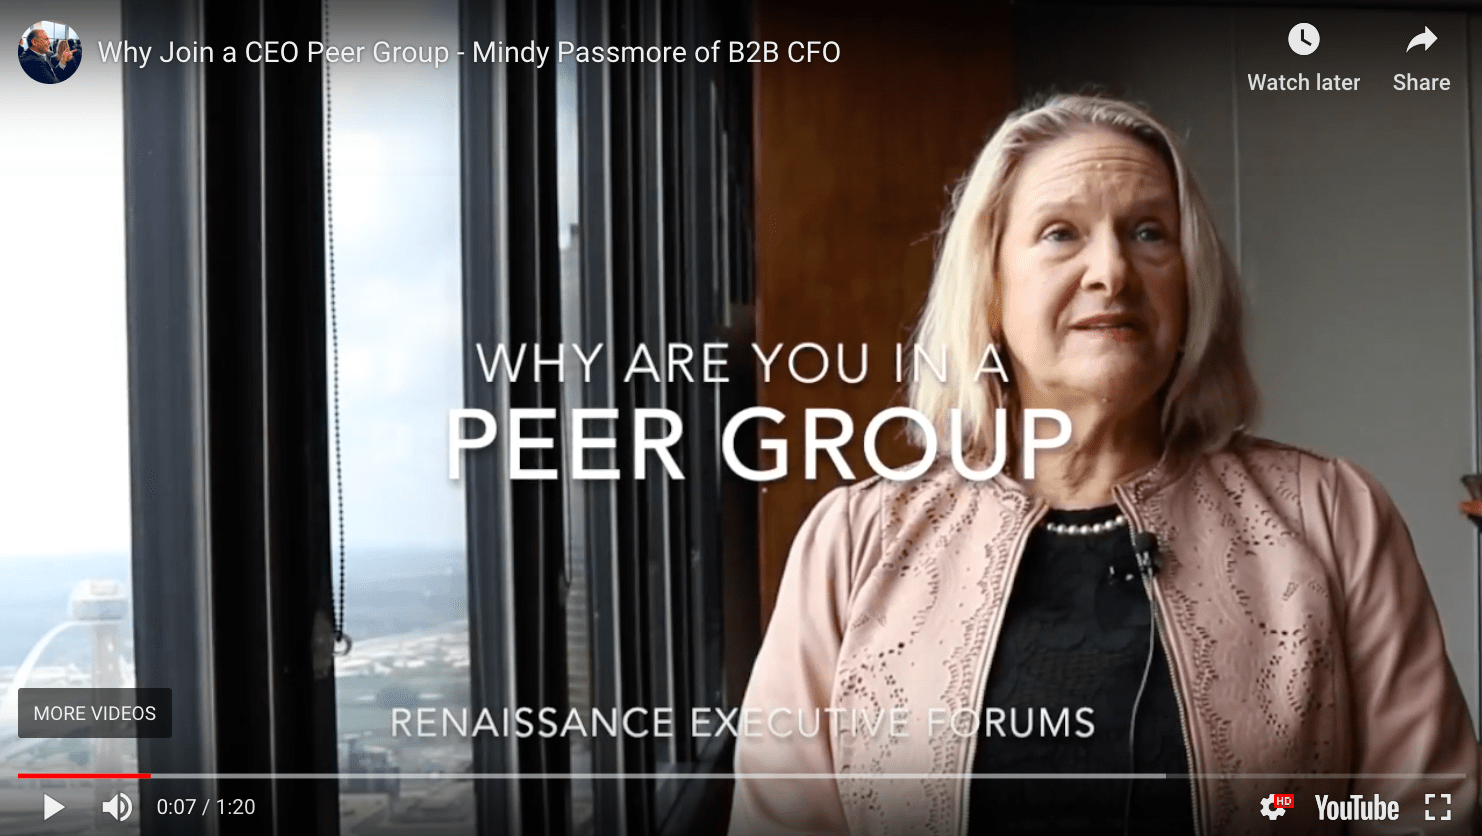 CEO Peer Group, CEO peer group Dallas, member testimonial, Renaissance Executive Forums Dallas, Mindy Passmore